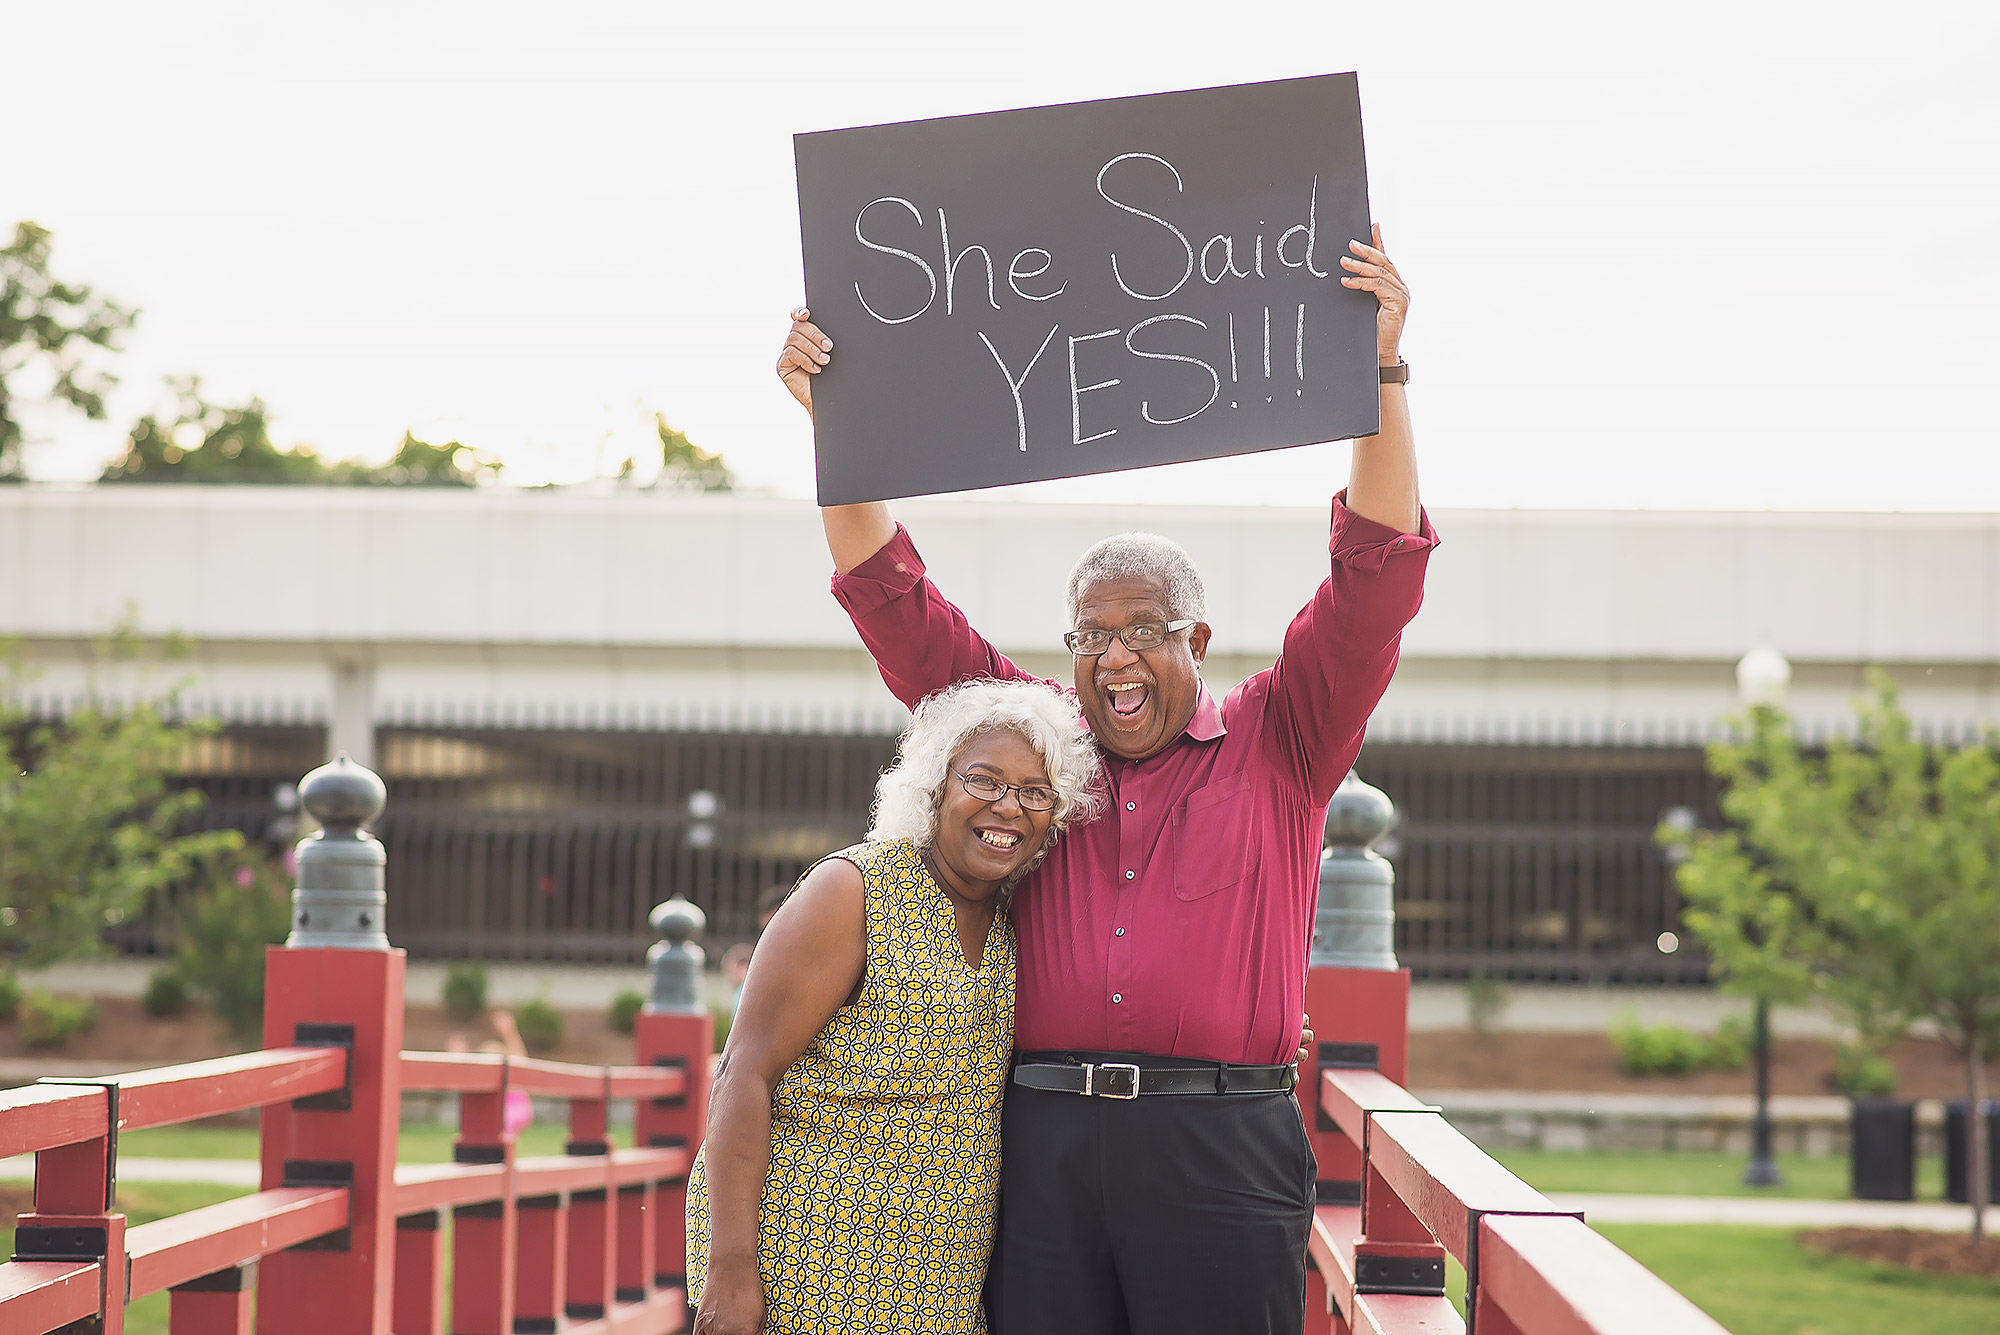 Silver-Haired Lovebirds' Engagement Photos Prove It's Never Too Late for Romance: 'We're Just Two Folks in Love'